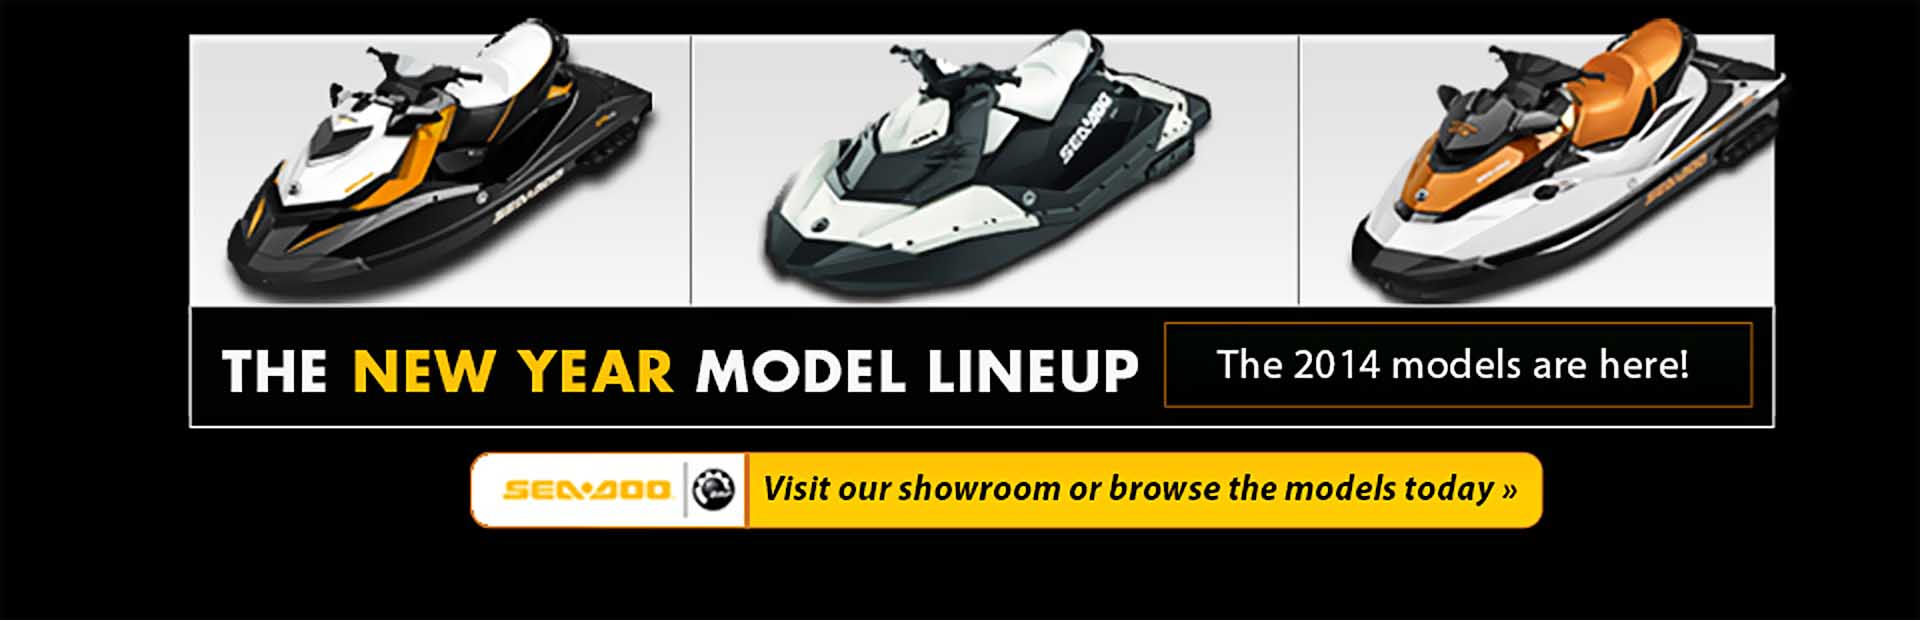 View the 2014 Sea-Doo lineup.